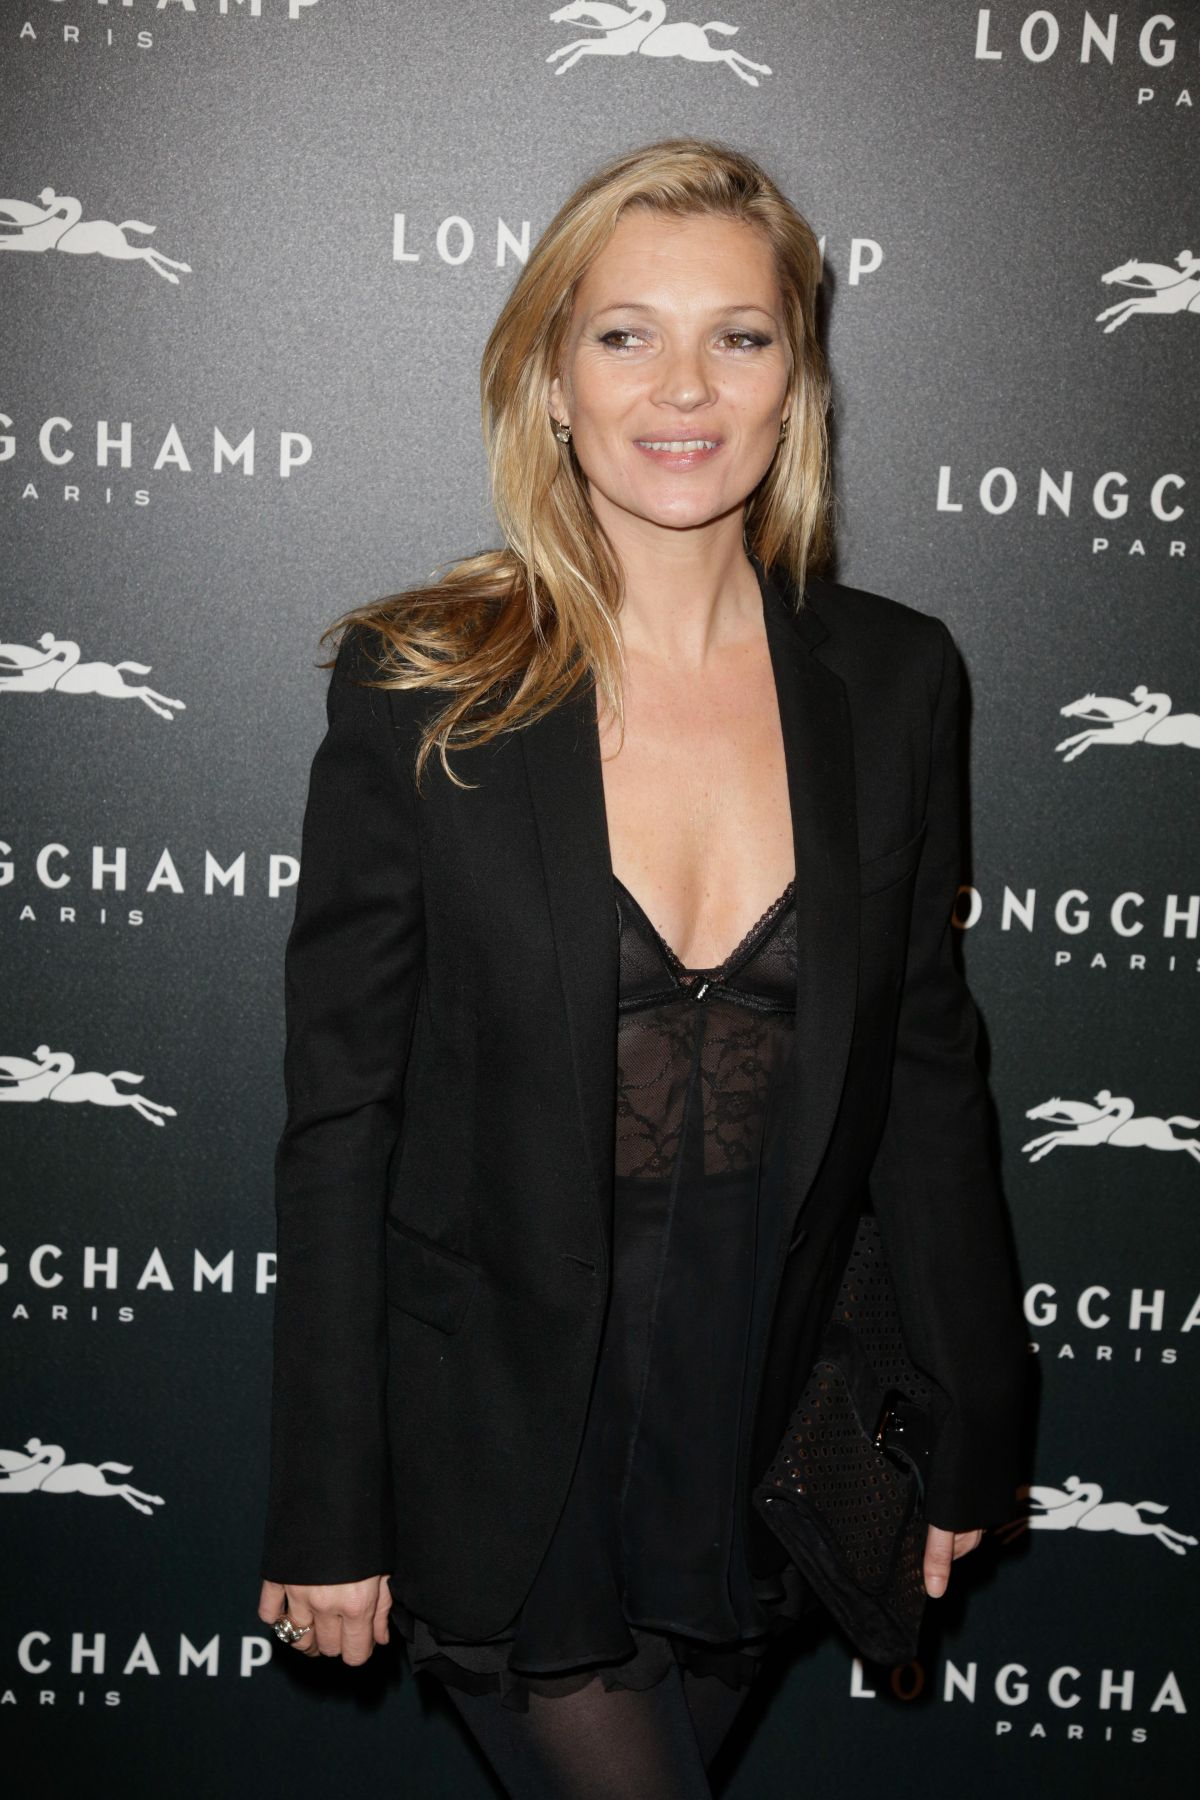 KATE MOSS at Longchamp Elysees Light On Party Photocall in Paris